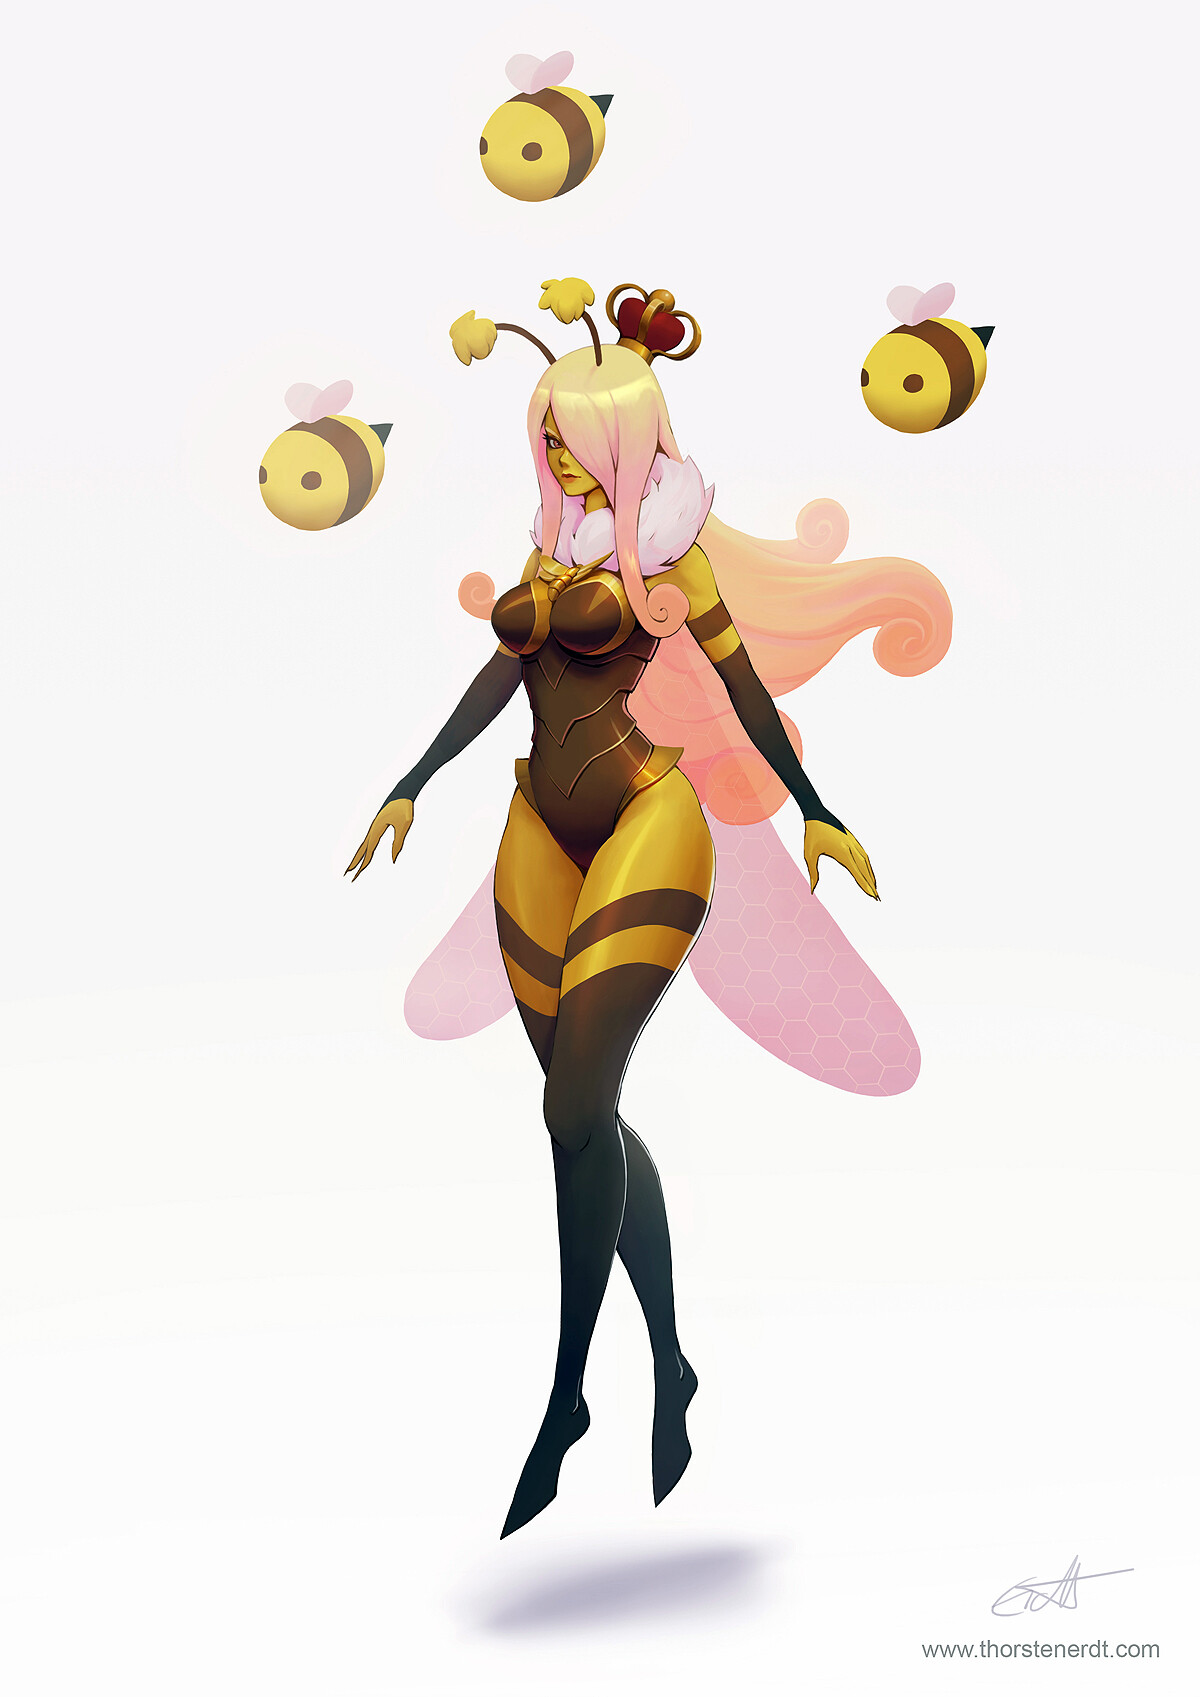 Queen Bee Syndra concept